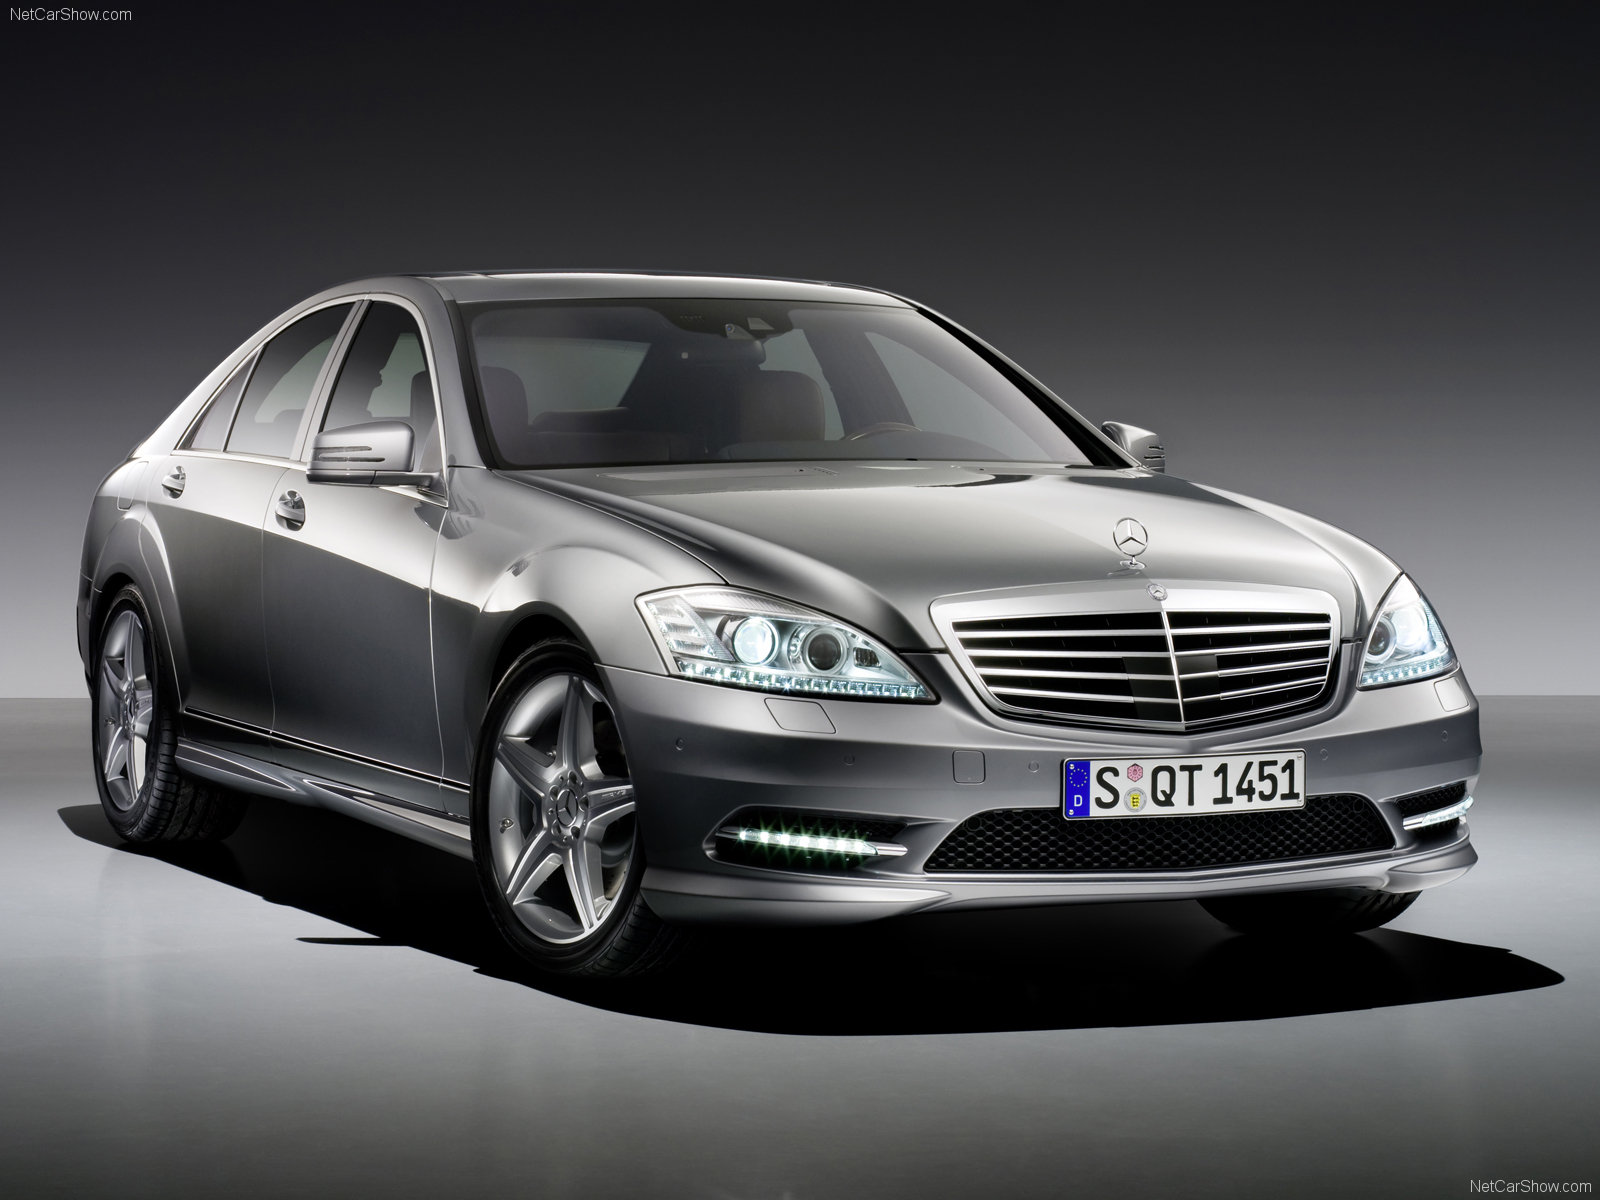 You can vote for this Mercedes-Benz S-Class photo